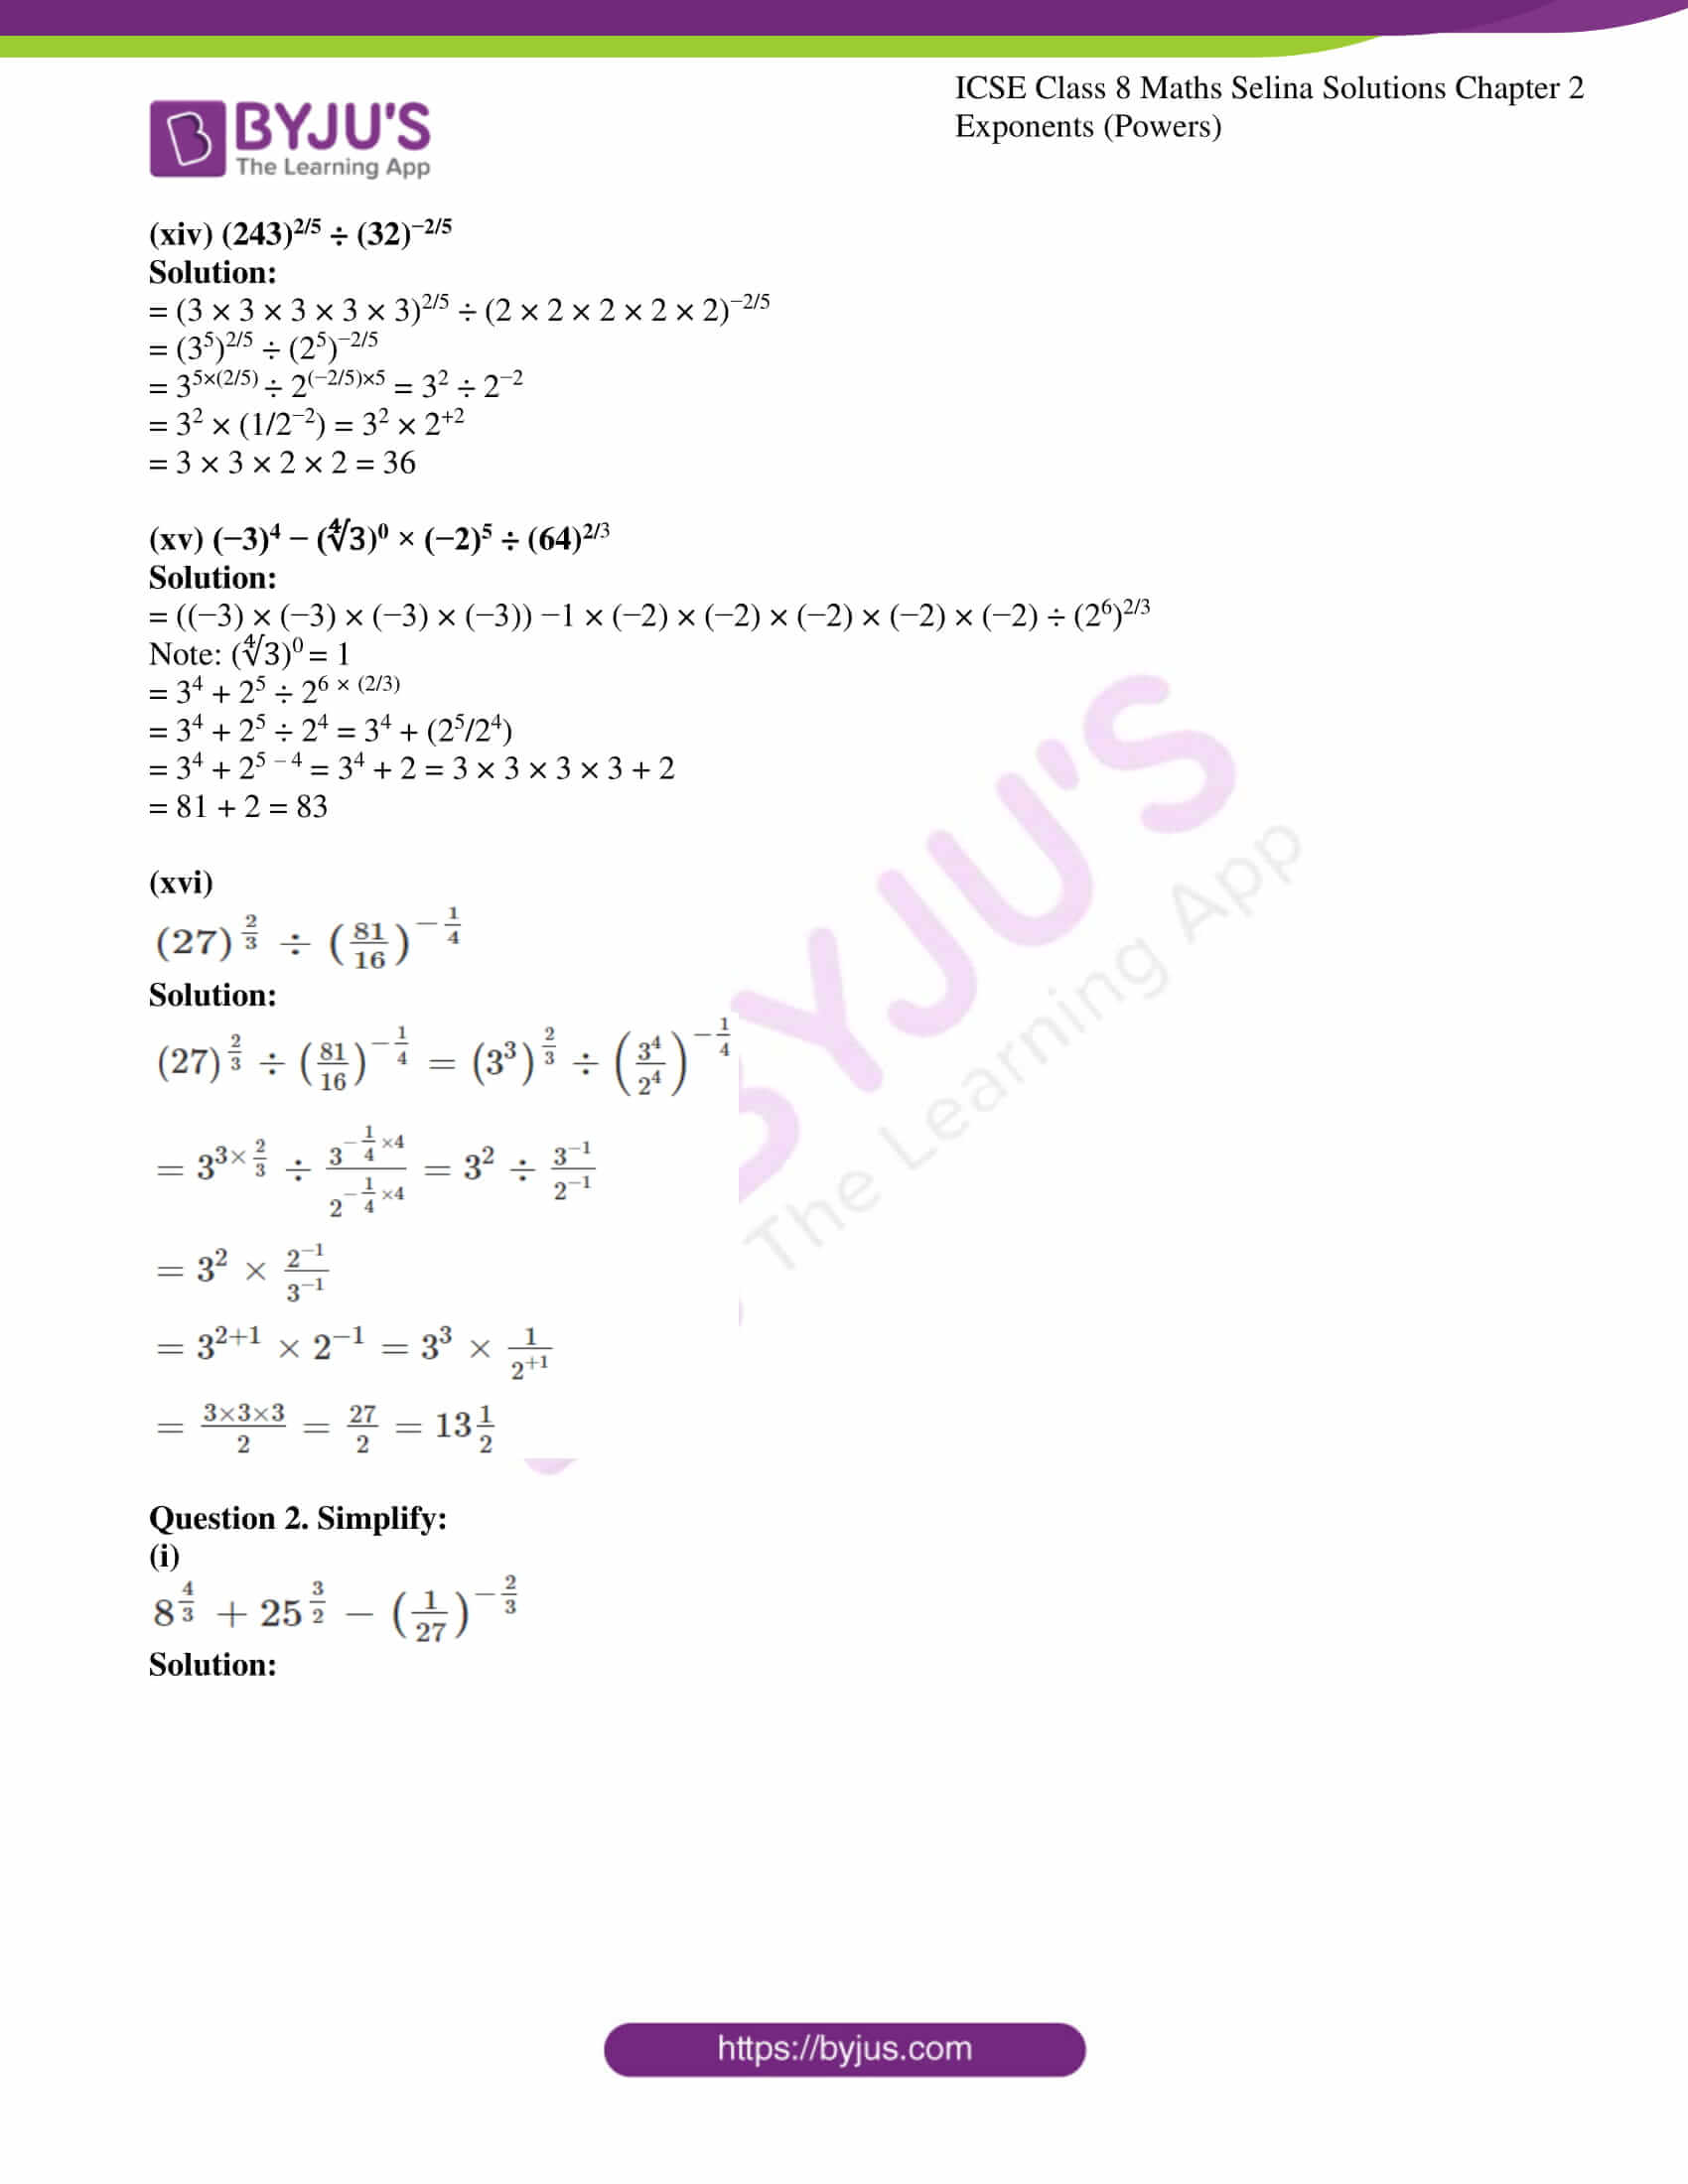 icse april7 class 8 maths selina solutions chapter 2 exponents powers 07